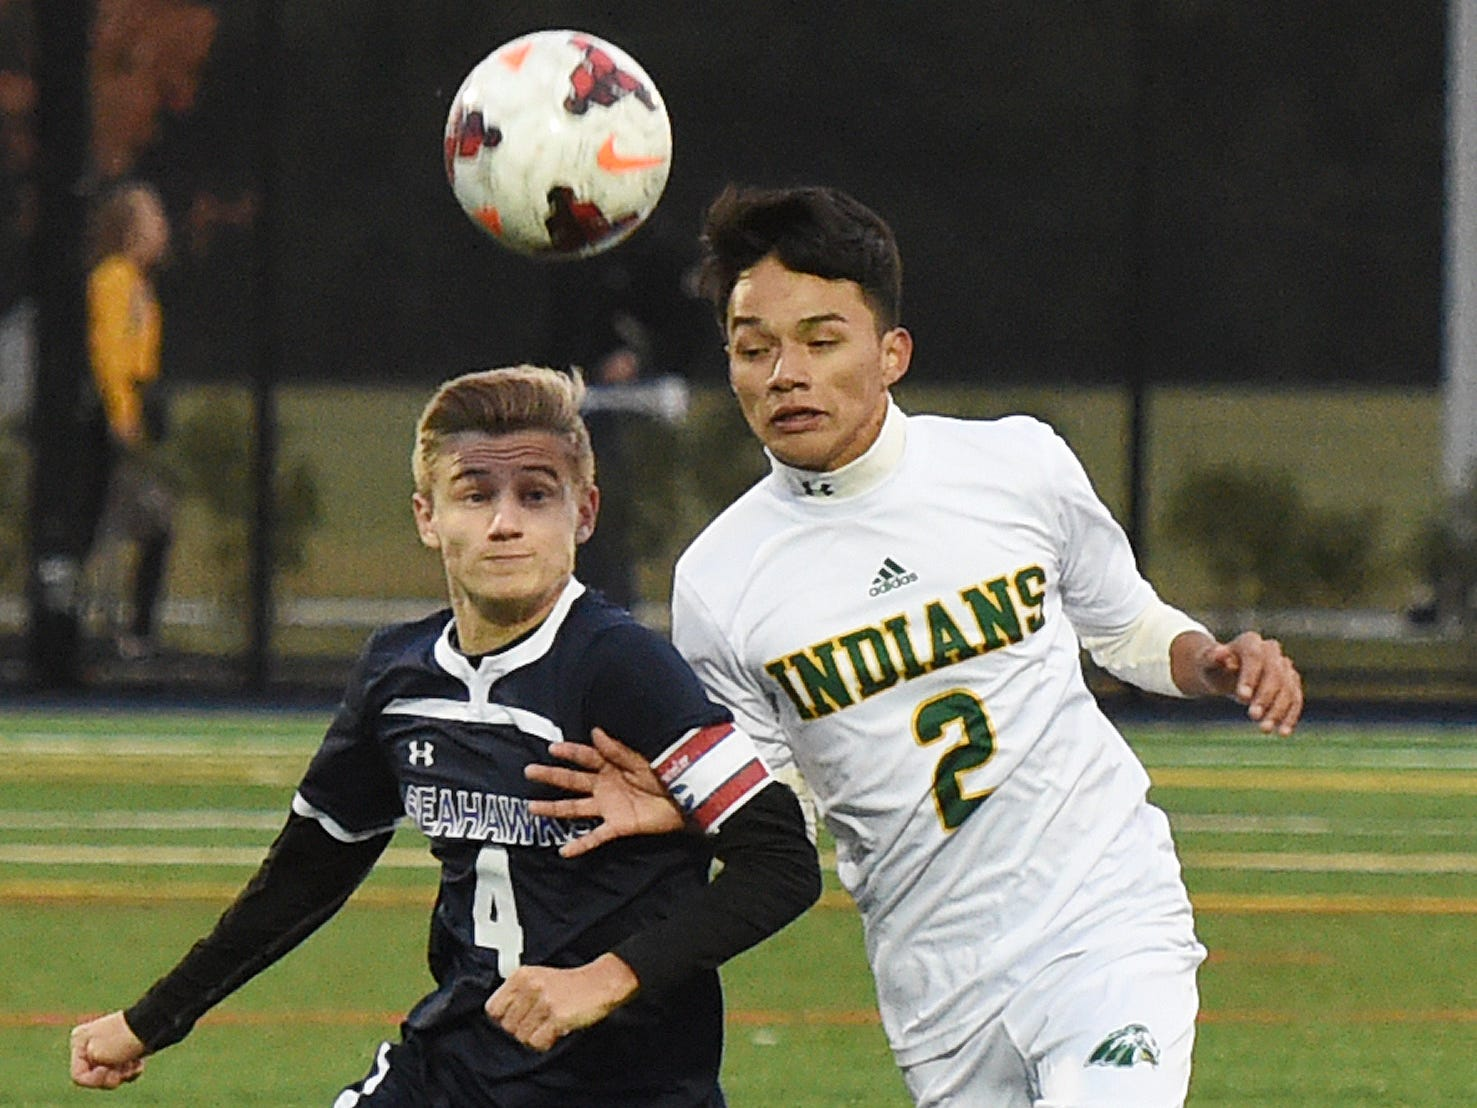 Sussex Academy's Kyle Berdini and Indian River's Jhony Ortiz Velasquez fight for the ball during the Indians' 1-0 win Oct. 25, 2018, in Georgetown.